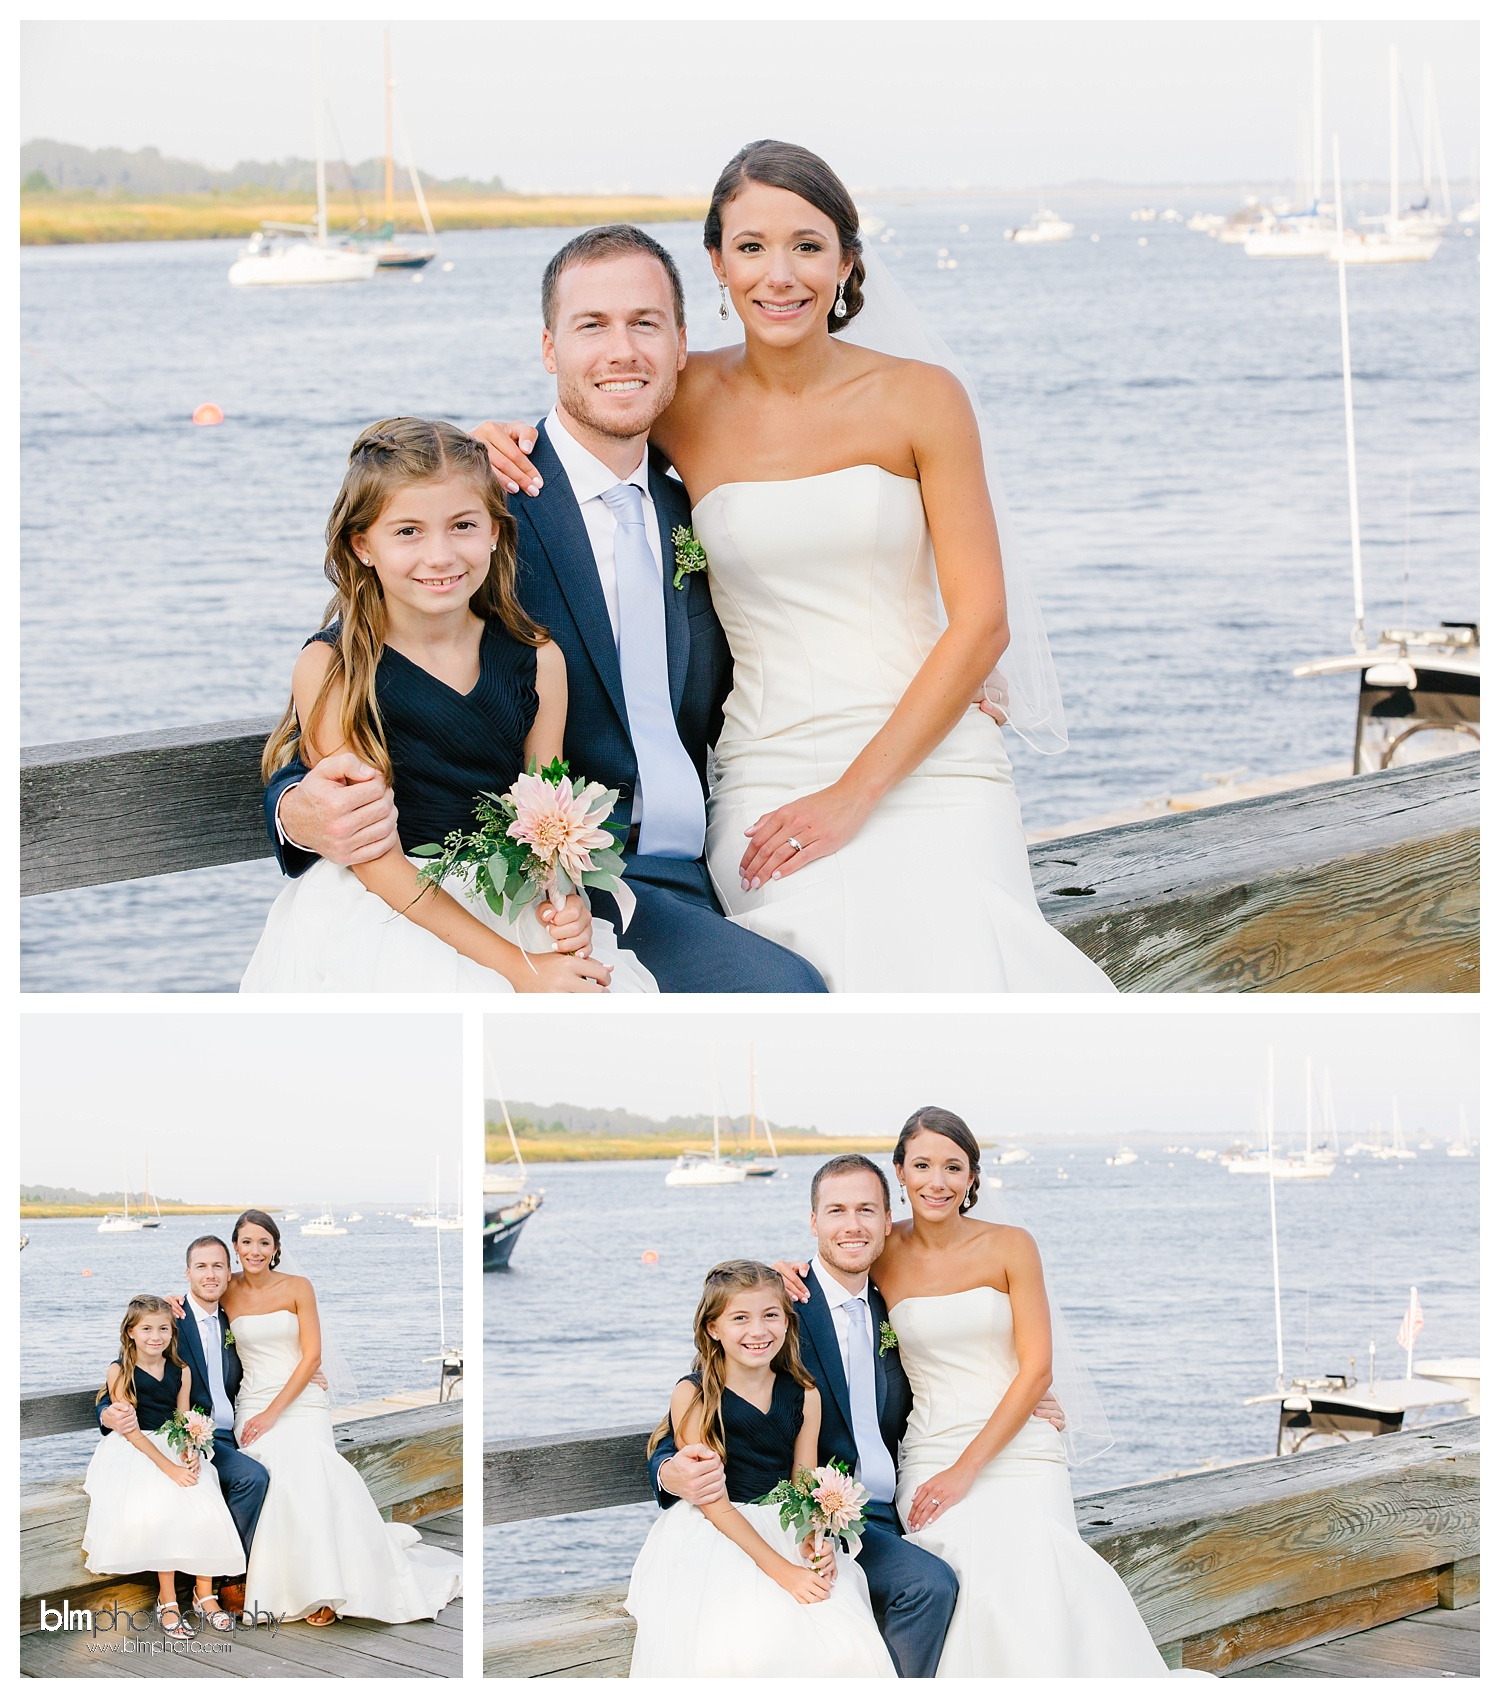 234Nathalie & Kirwan Married at The Maritime Museum_20170916_3984.jpg